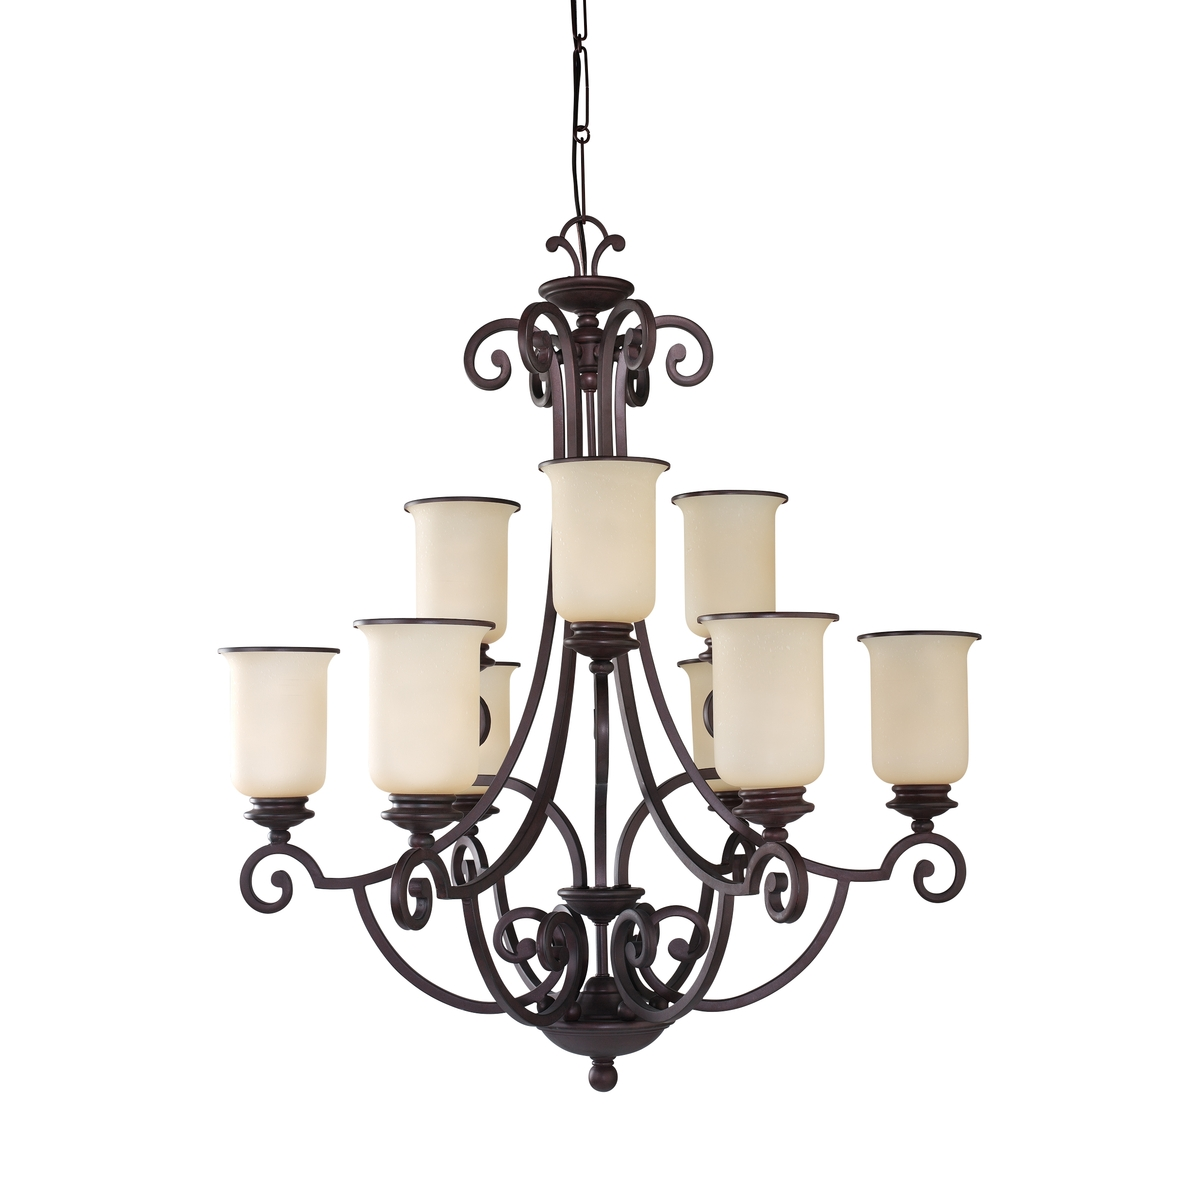 Sea Gull Lighting Acadia 9 Light Chandelier in Misted Bronze 31147-814 photo